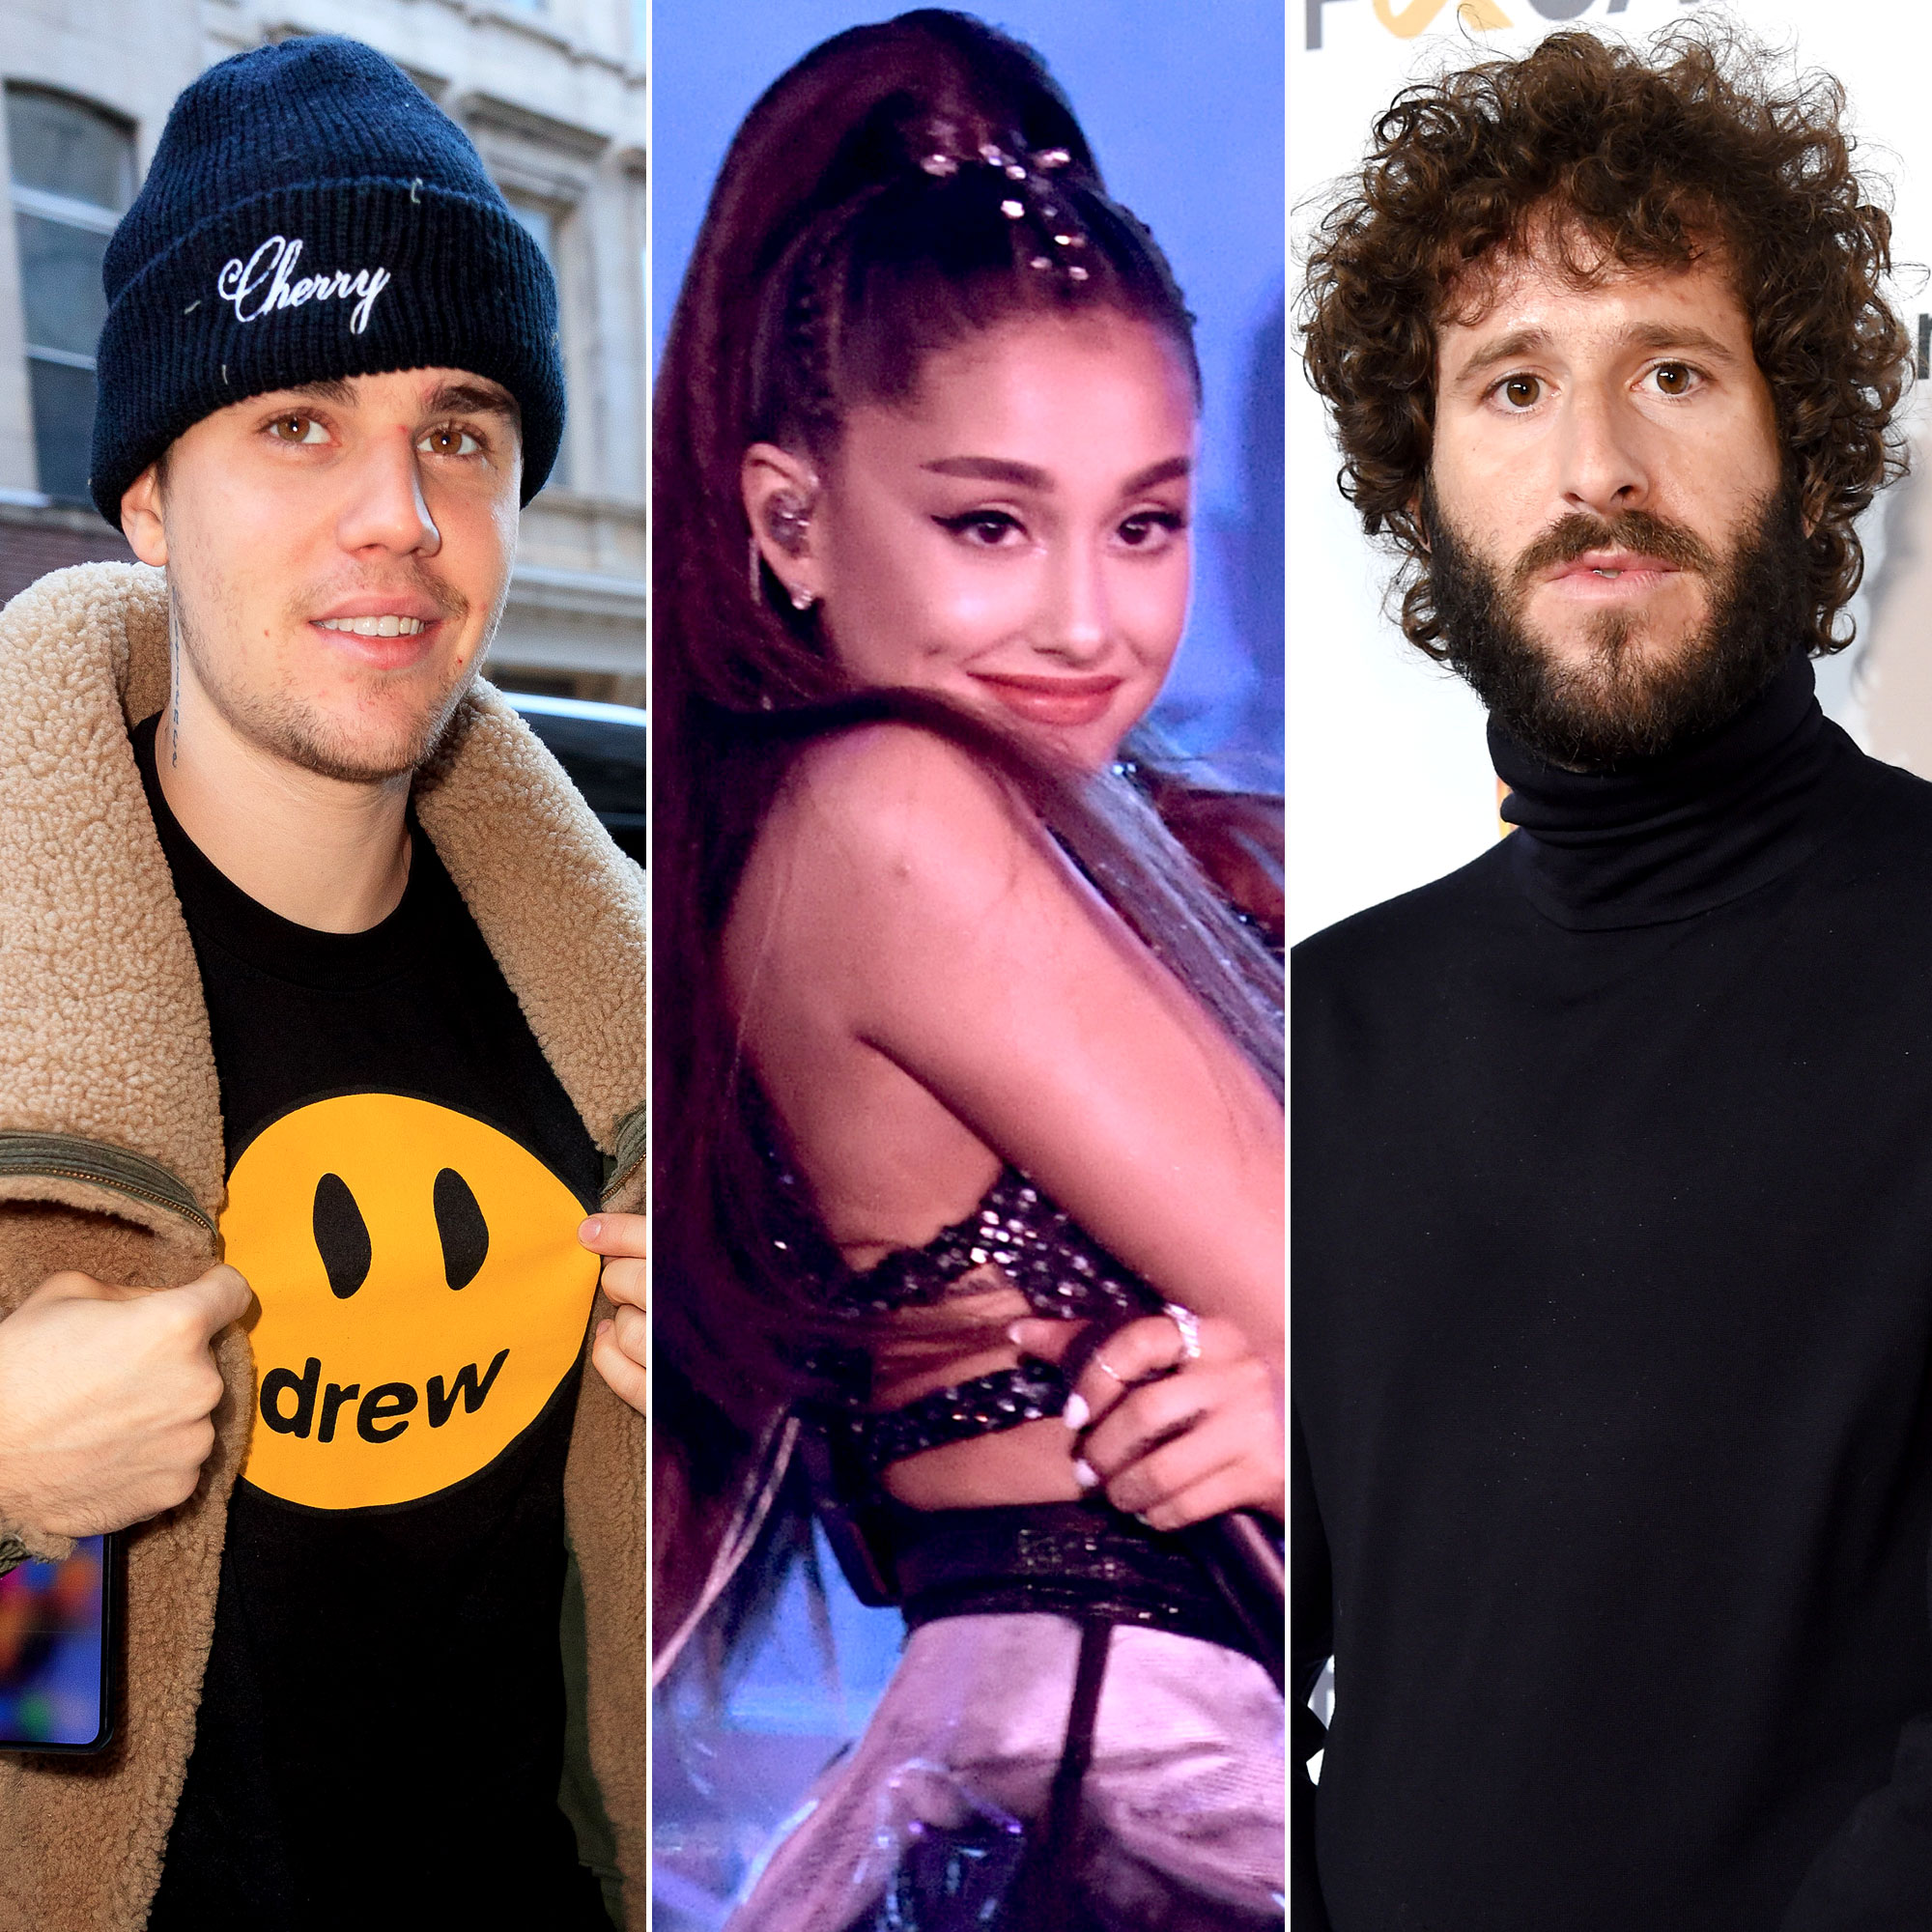 Lil Dicky's 'Earth' Music Video Celebrity Cameos - Justin Bieber, Ariana Grande and Lil Dicky.